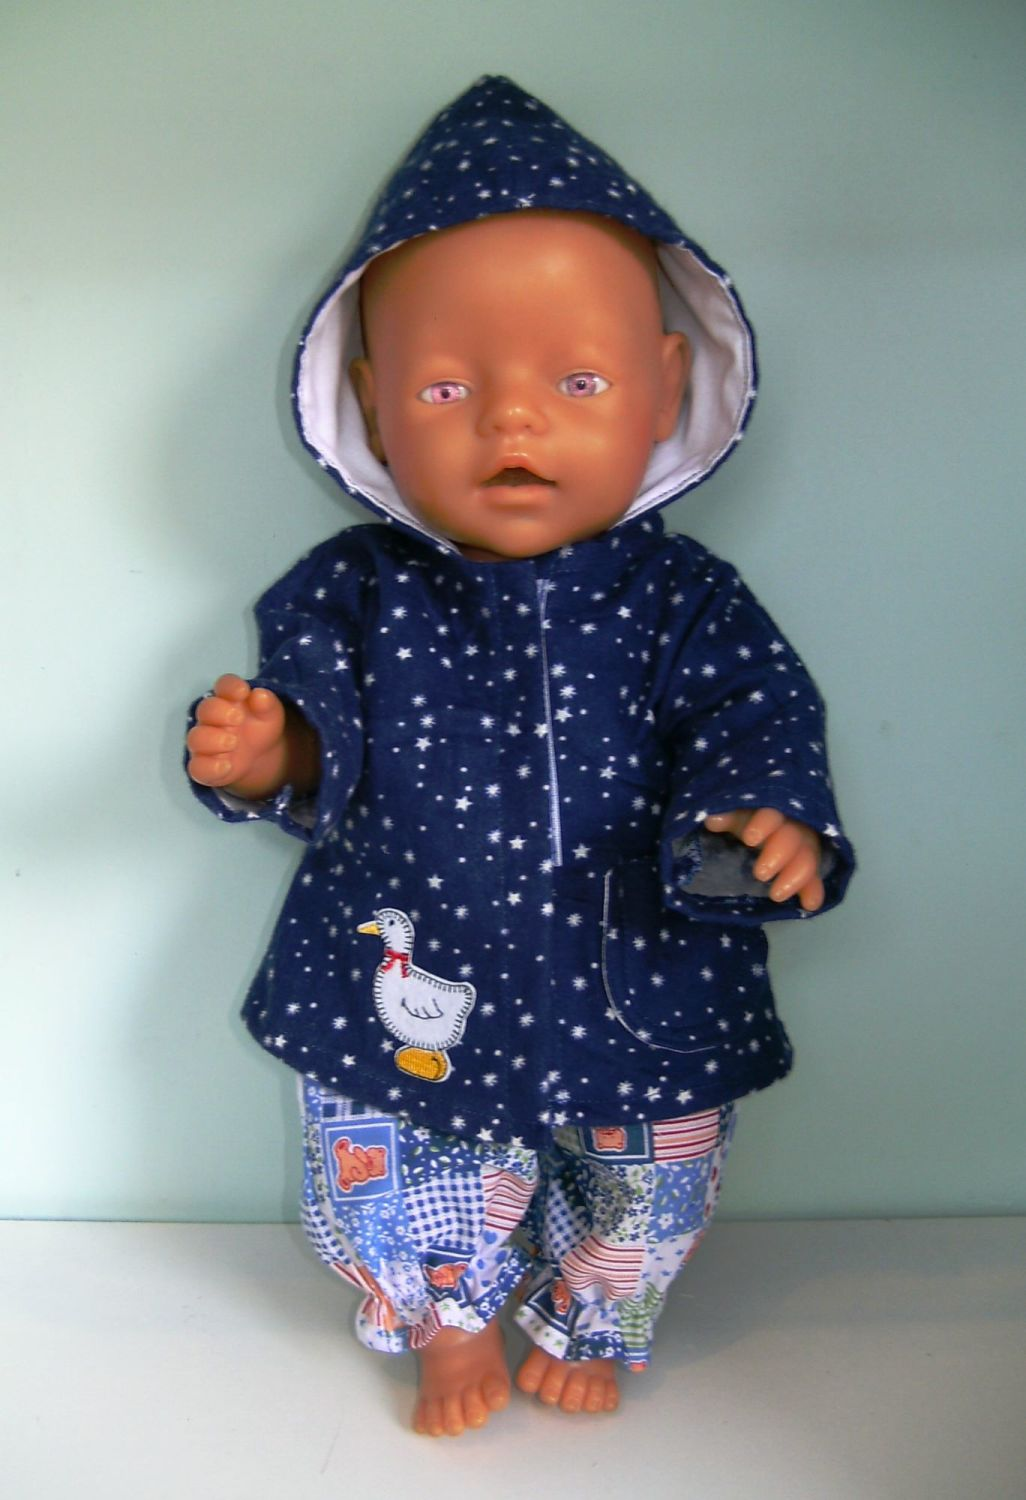 Doll's star print bathrobe